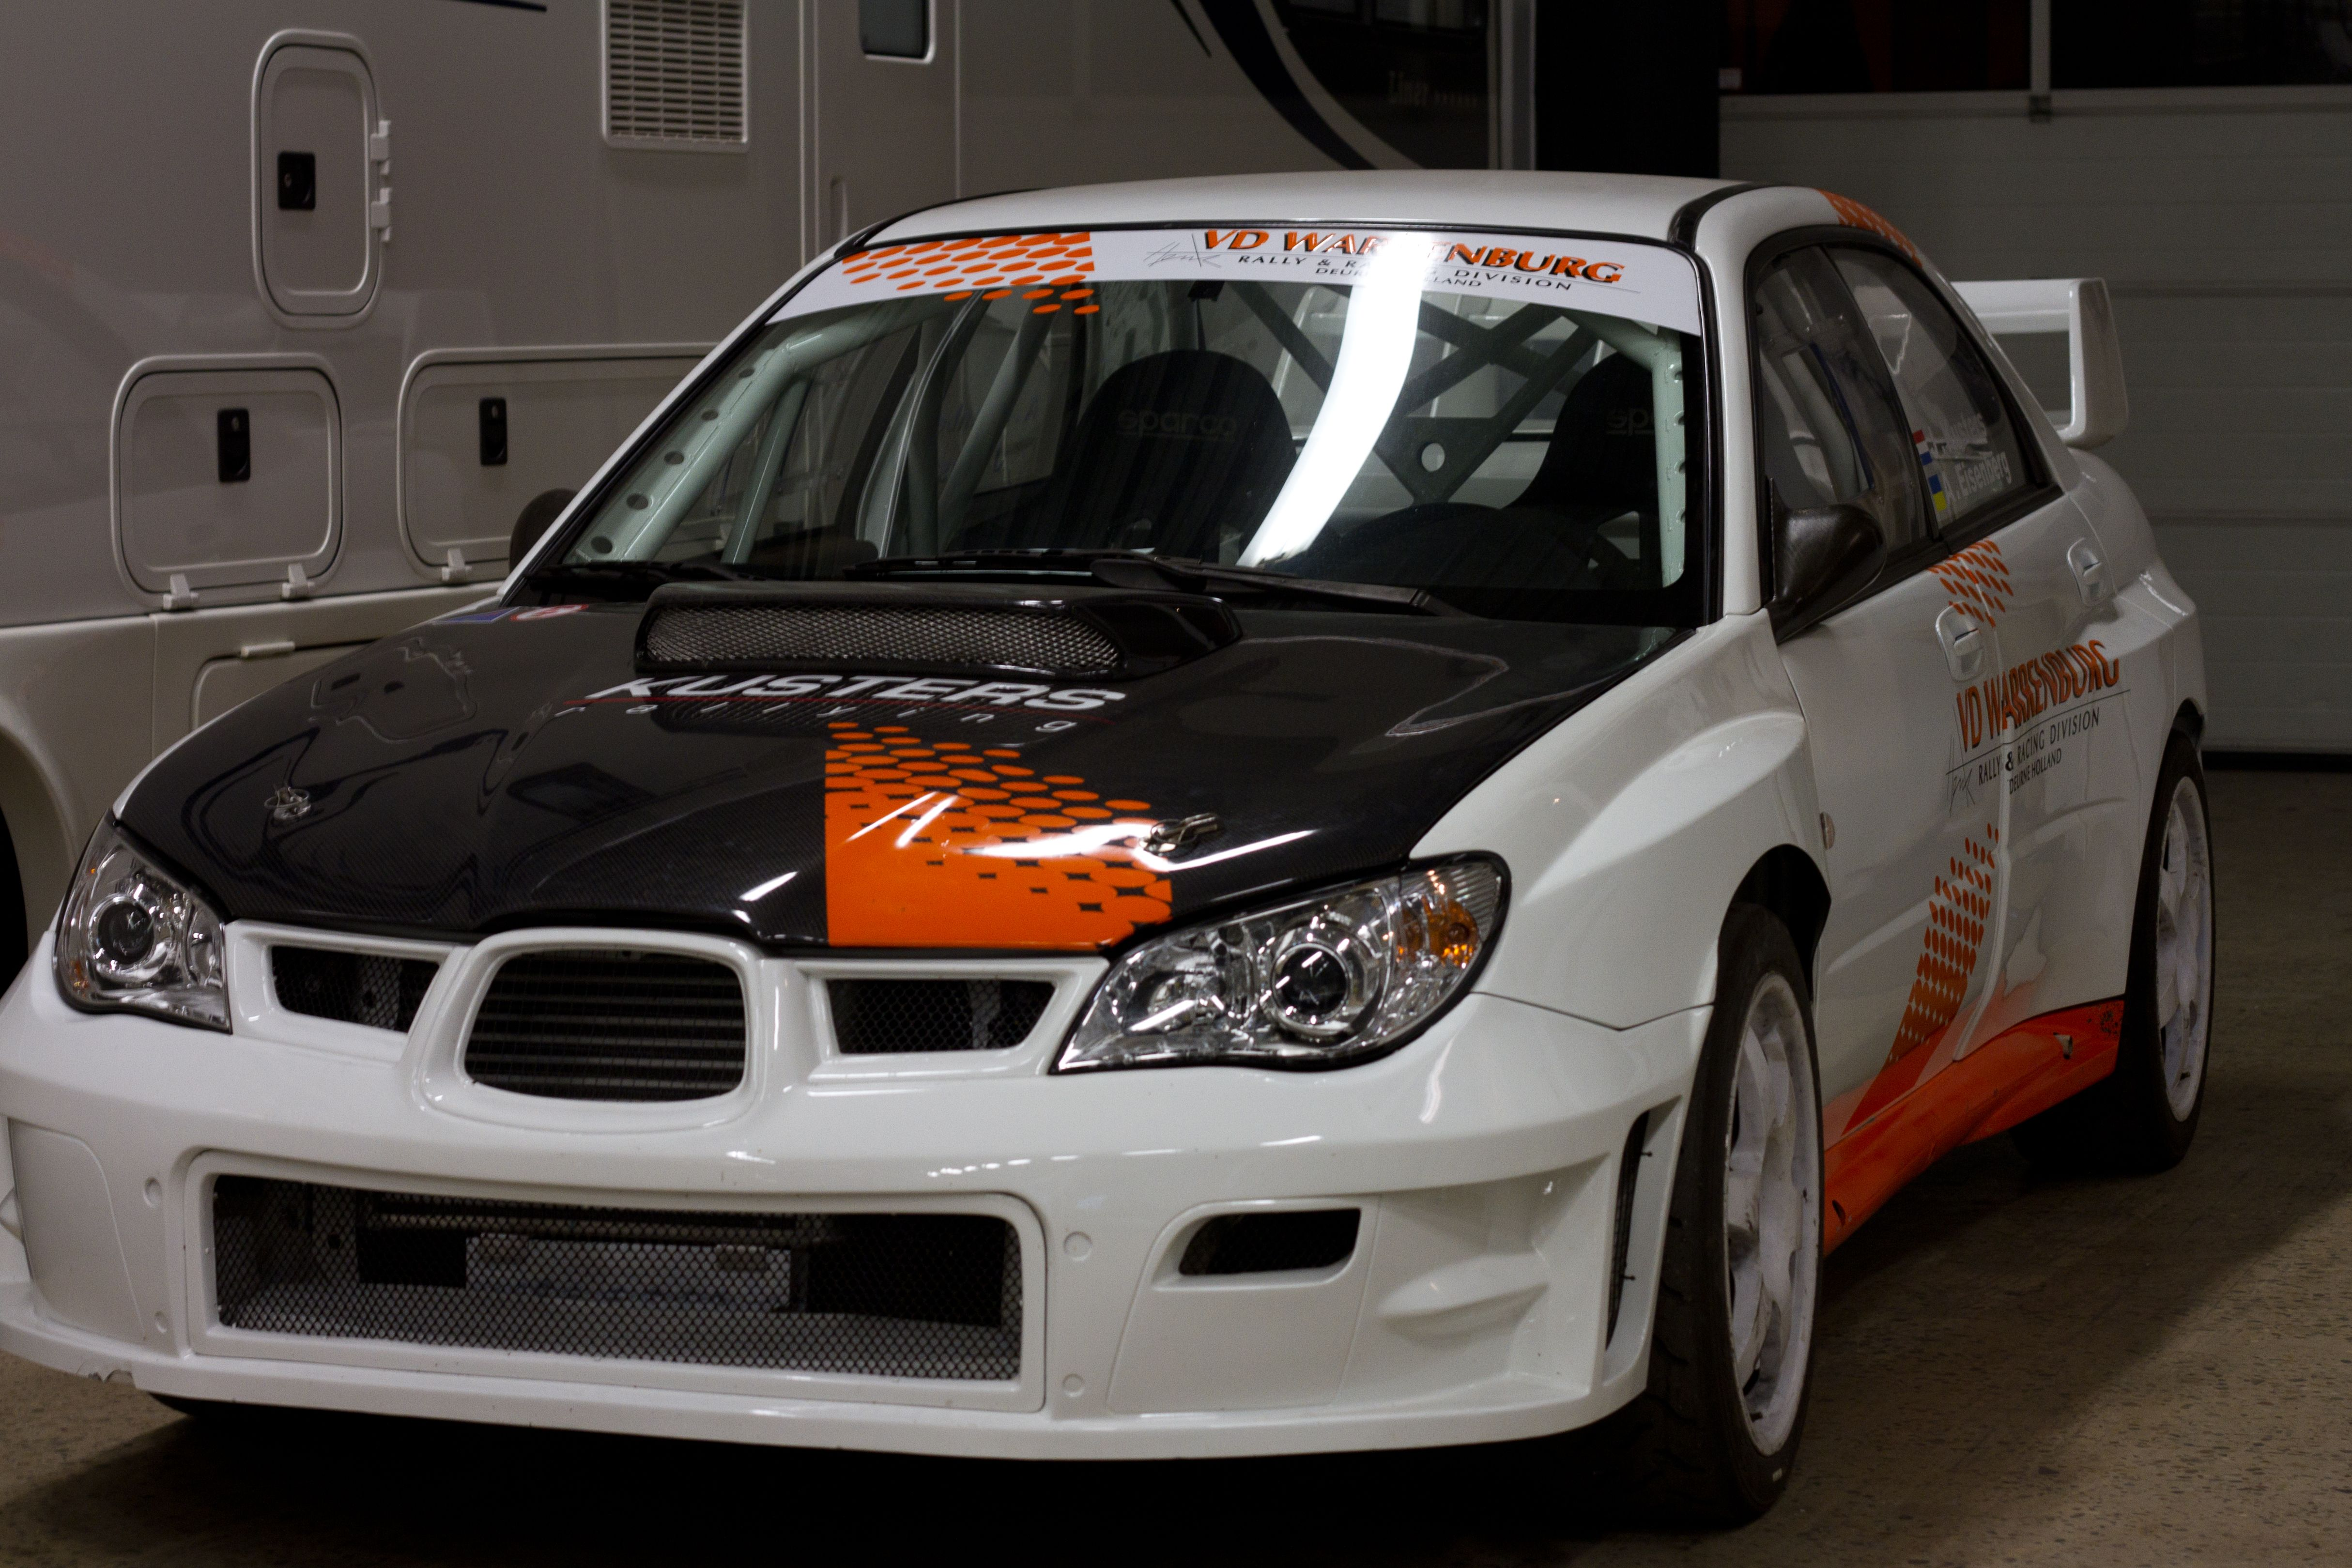 Prodrive S12 WRC replica build from WRC parts   Race / Rally cars ...